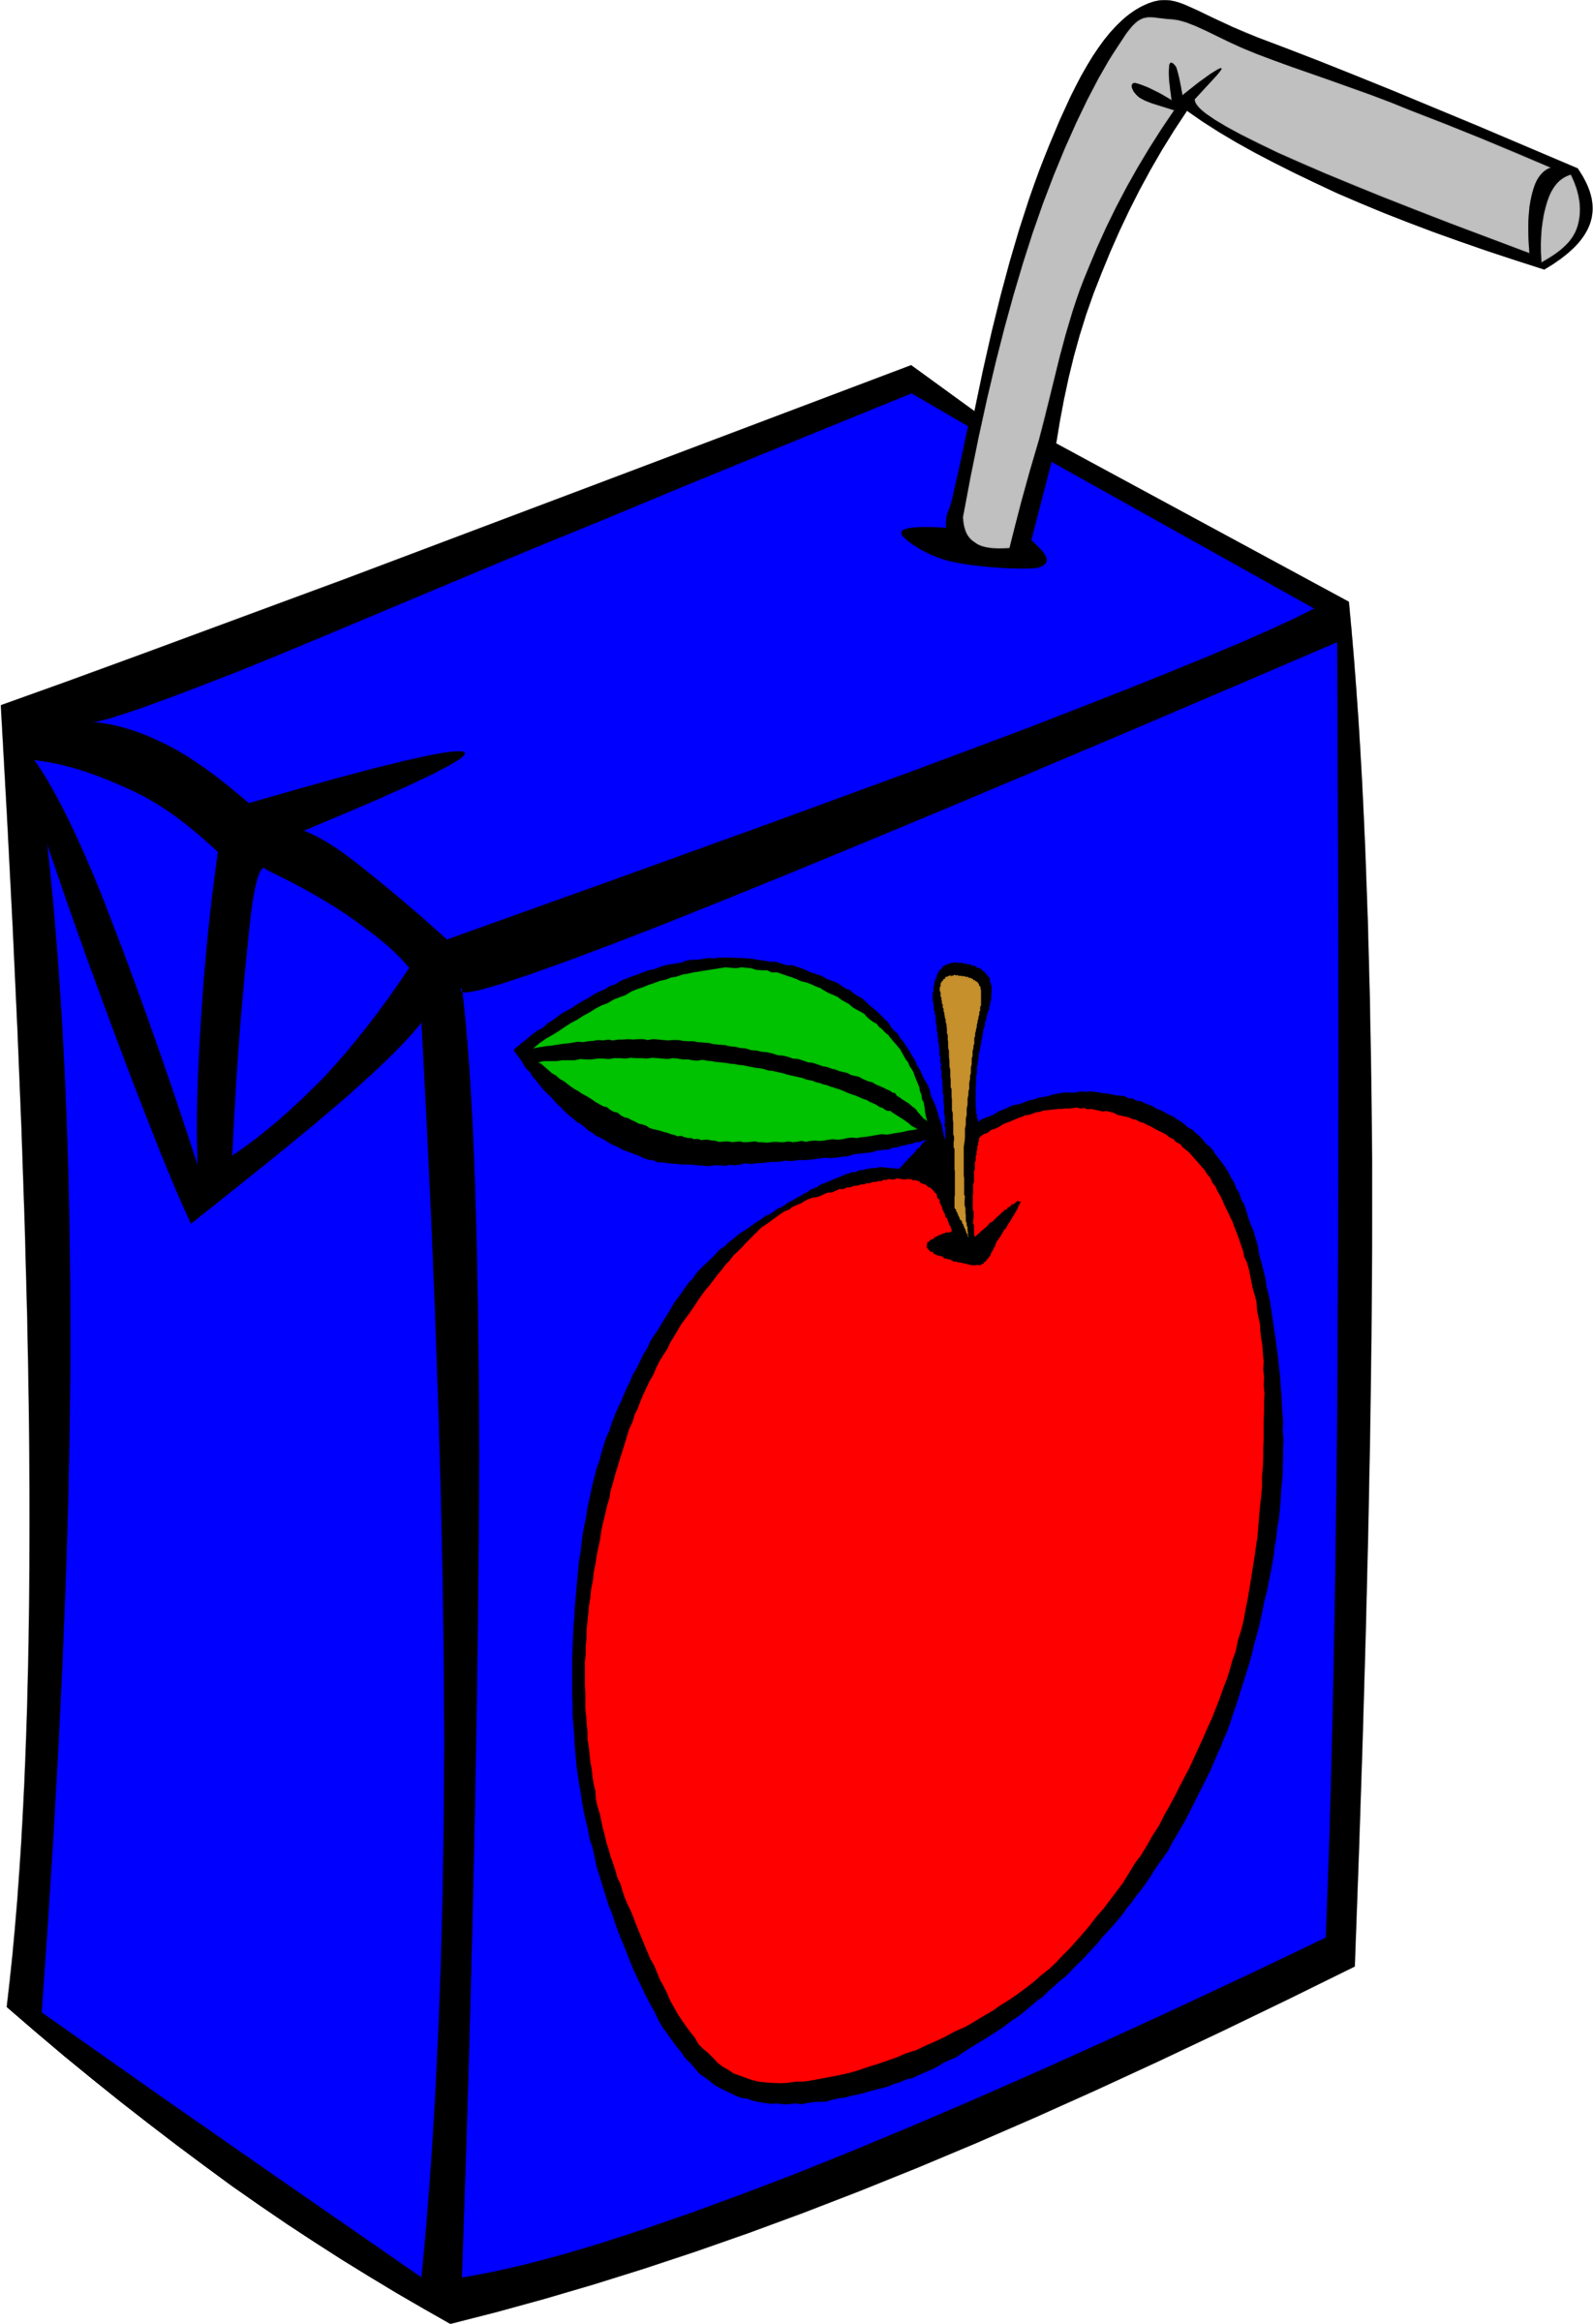 Clipart apple on book 2007 images clipart freeuse download Clipart - Fast Food, Drinks, Juice, Apple clipart freeuse download